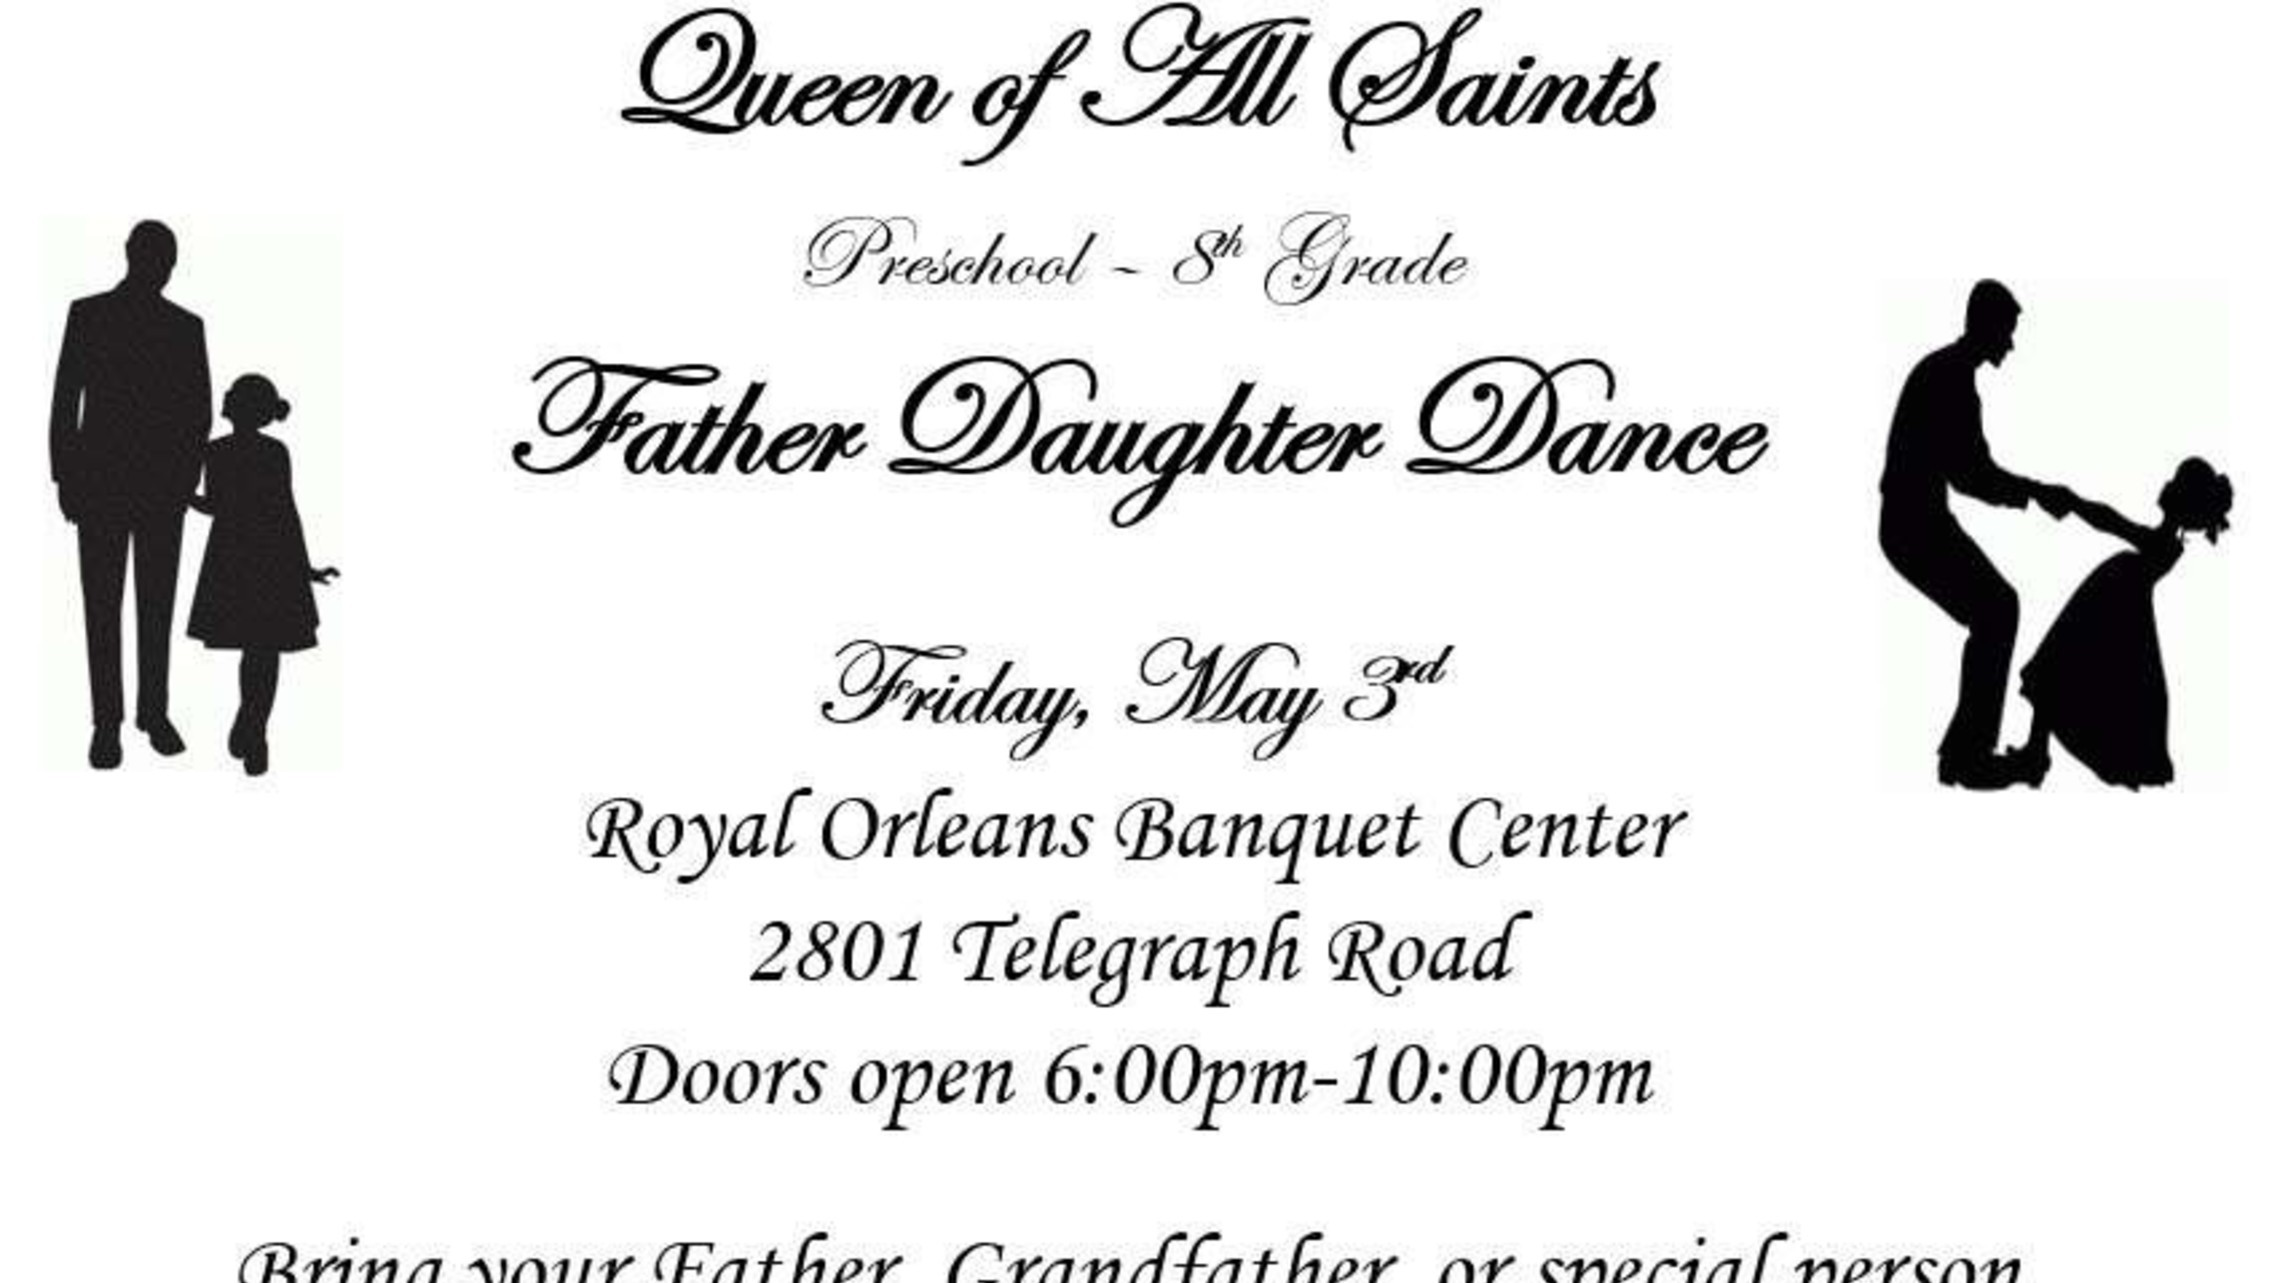 Father/Daughter Dance is on May 3rd!